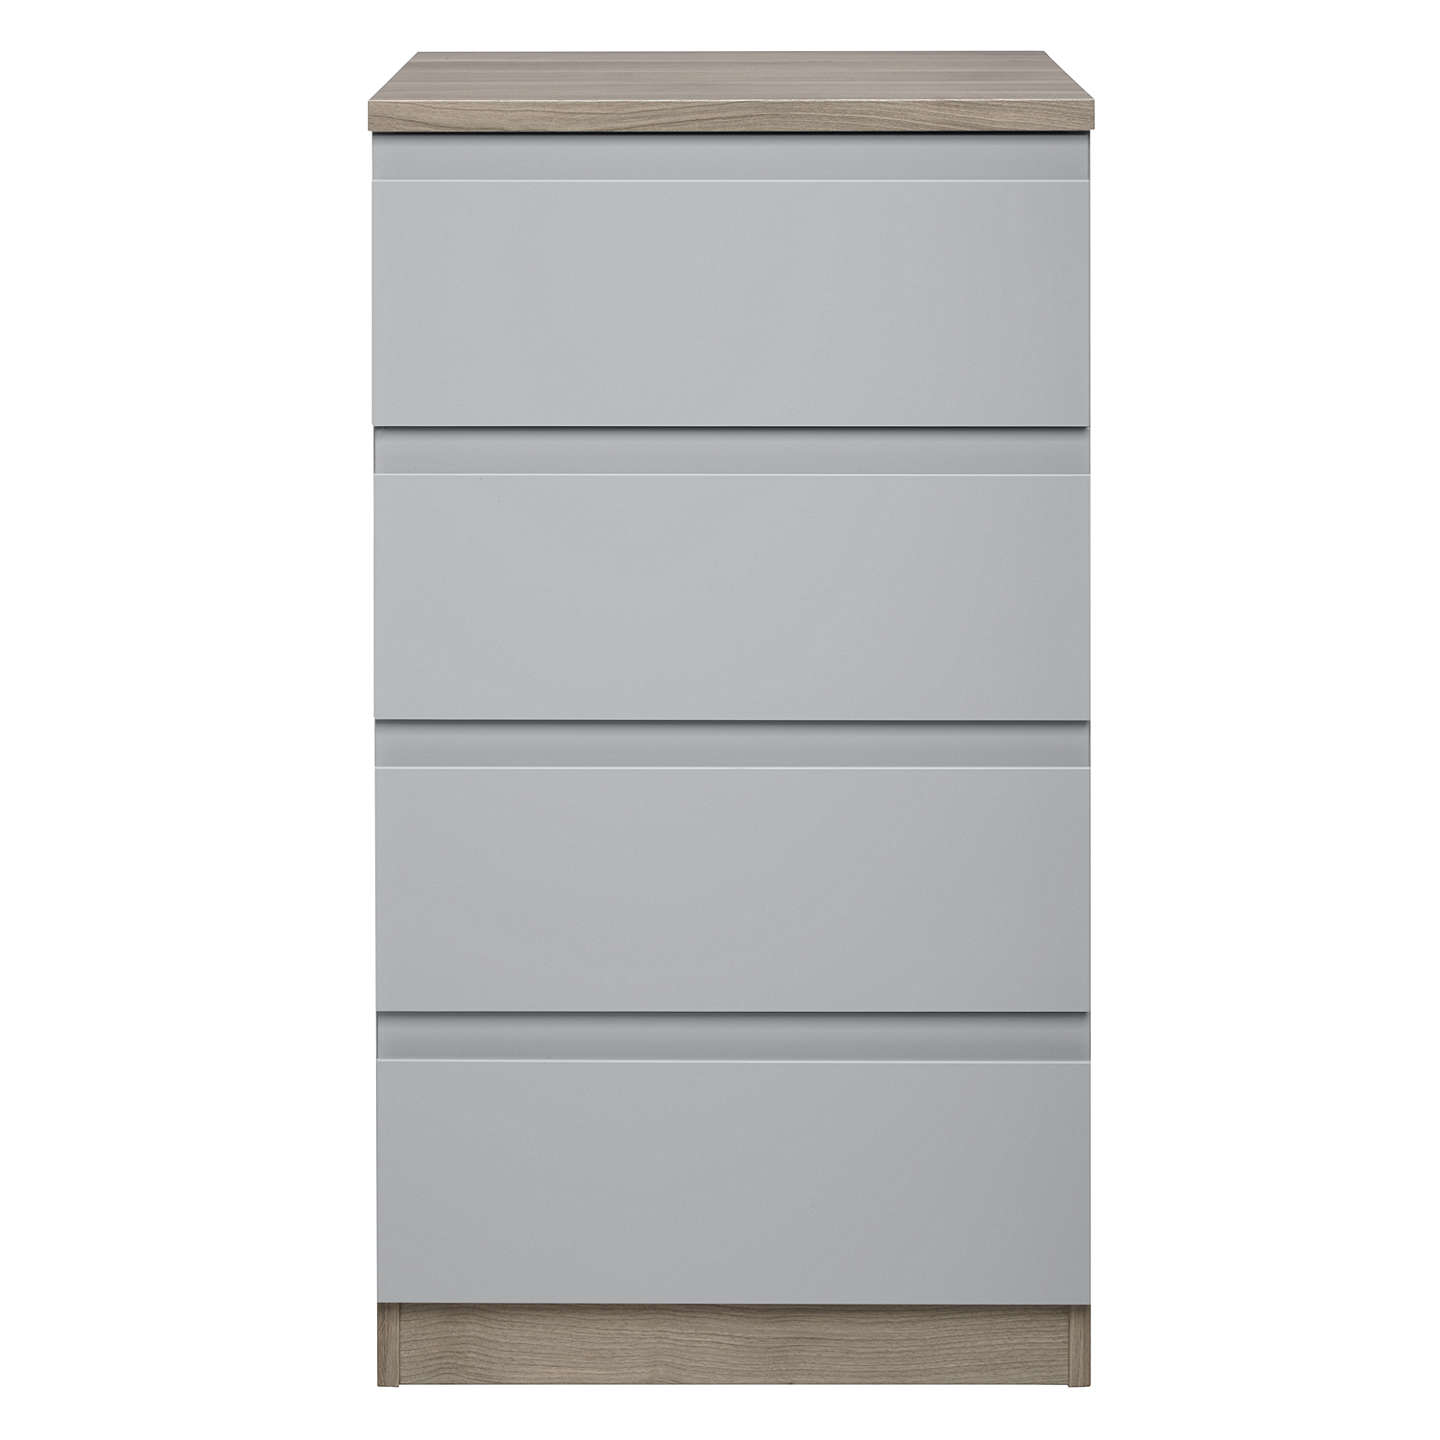 BuyHouse by John Lewis Mix it Narrow 4 Drawer Chest, House Smoke/Grey Ash Online at johnlewis.com